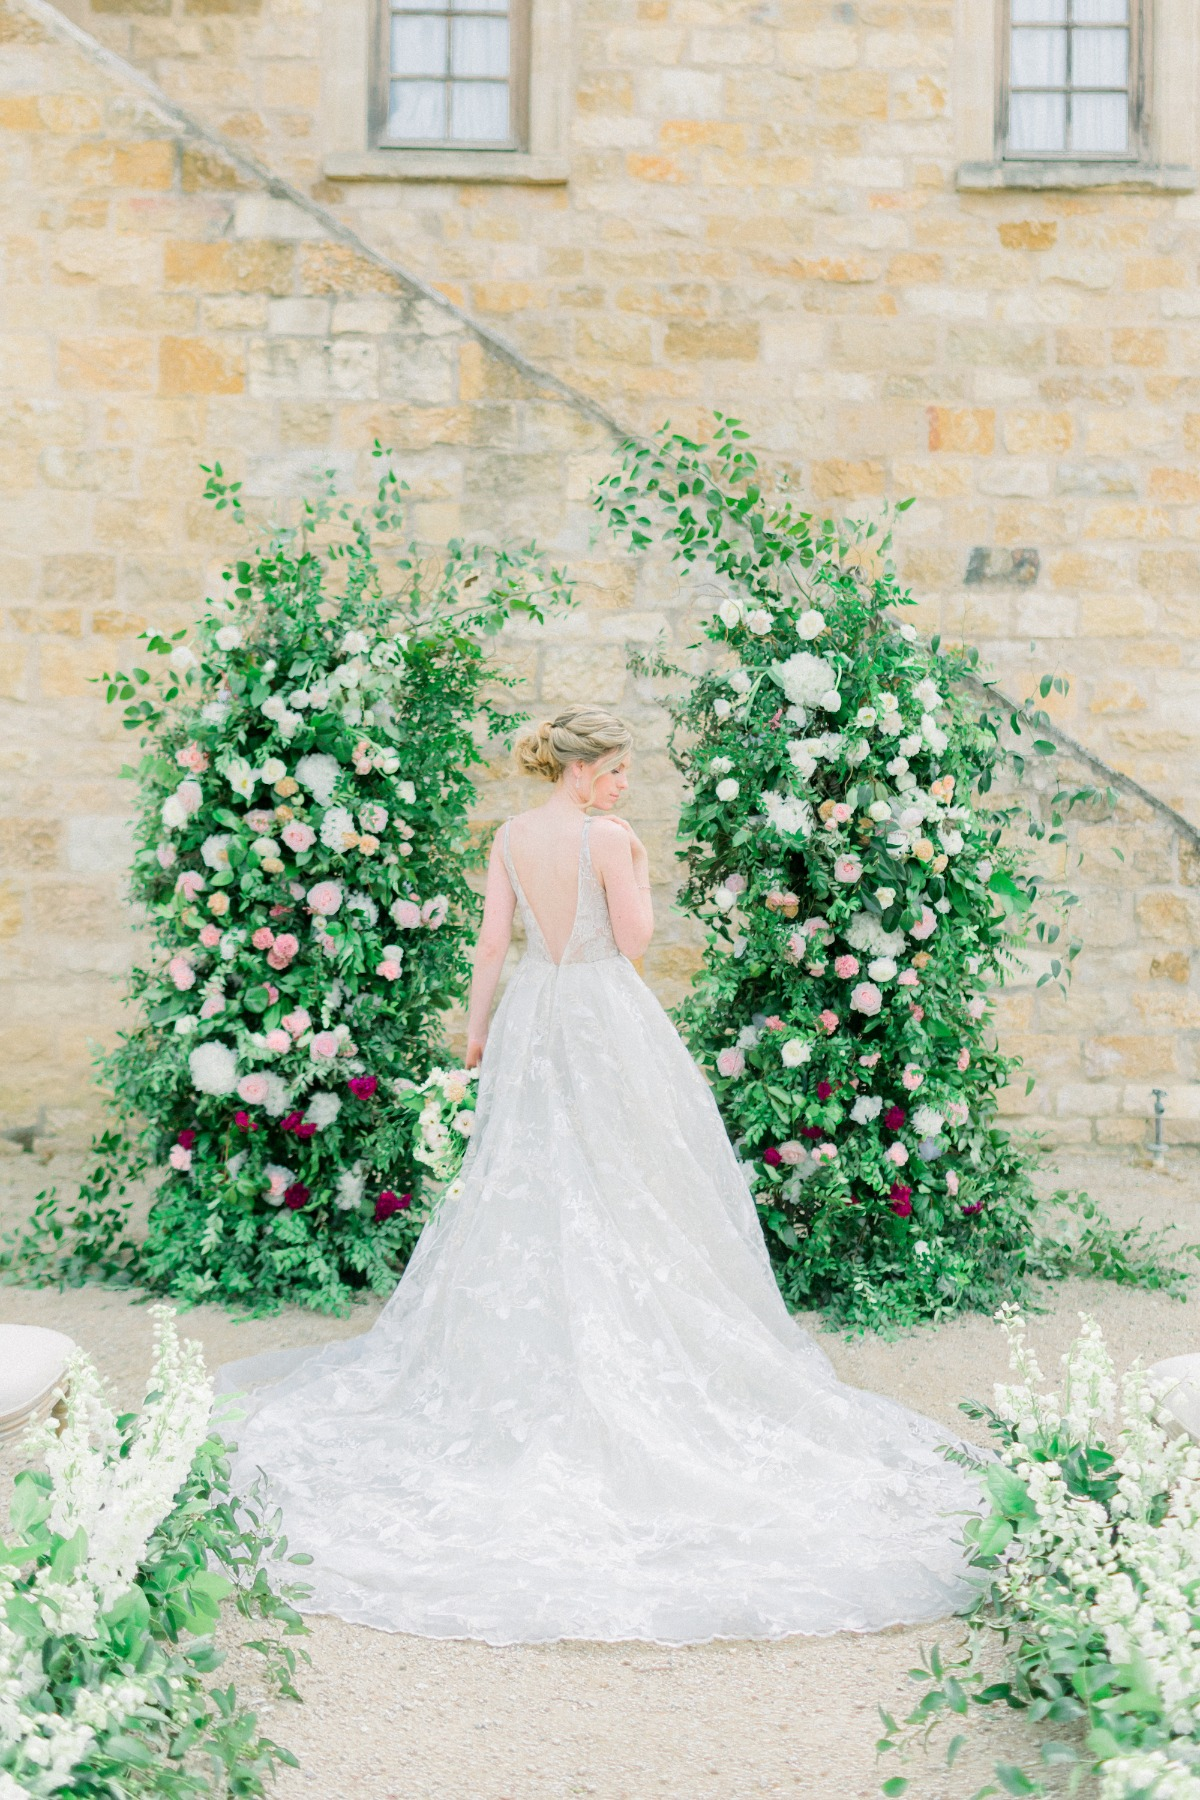 Hailey Paige Bridal wedding gown in front of organic floral backdro[